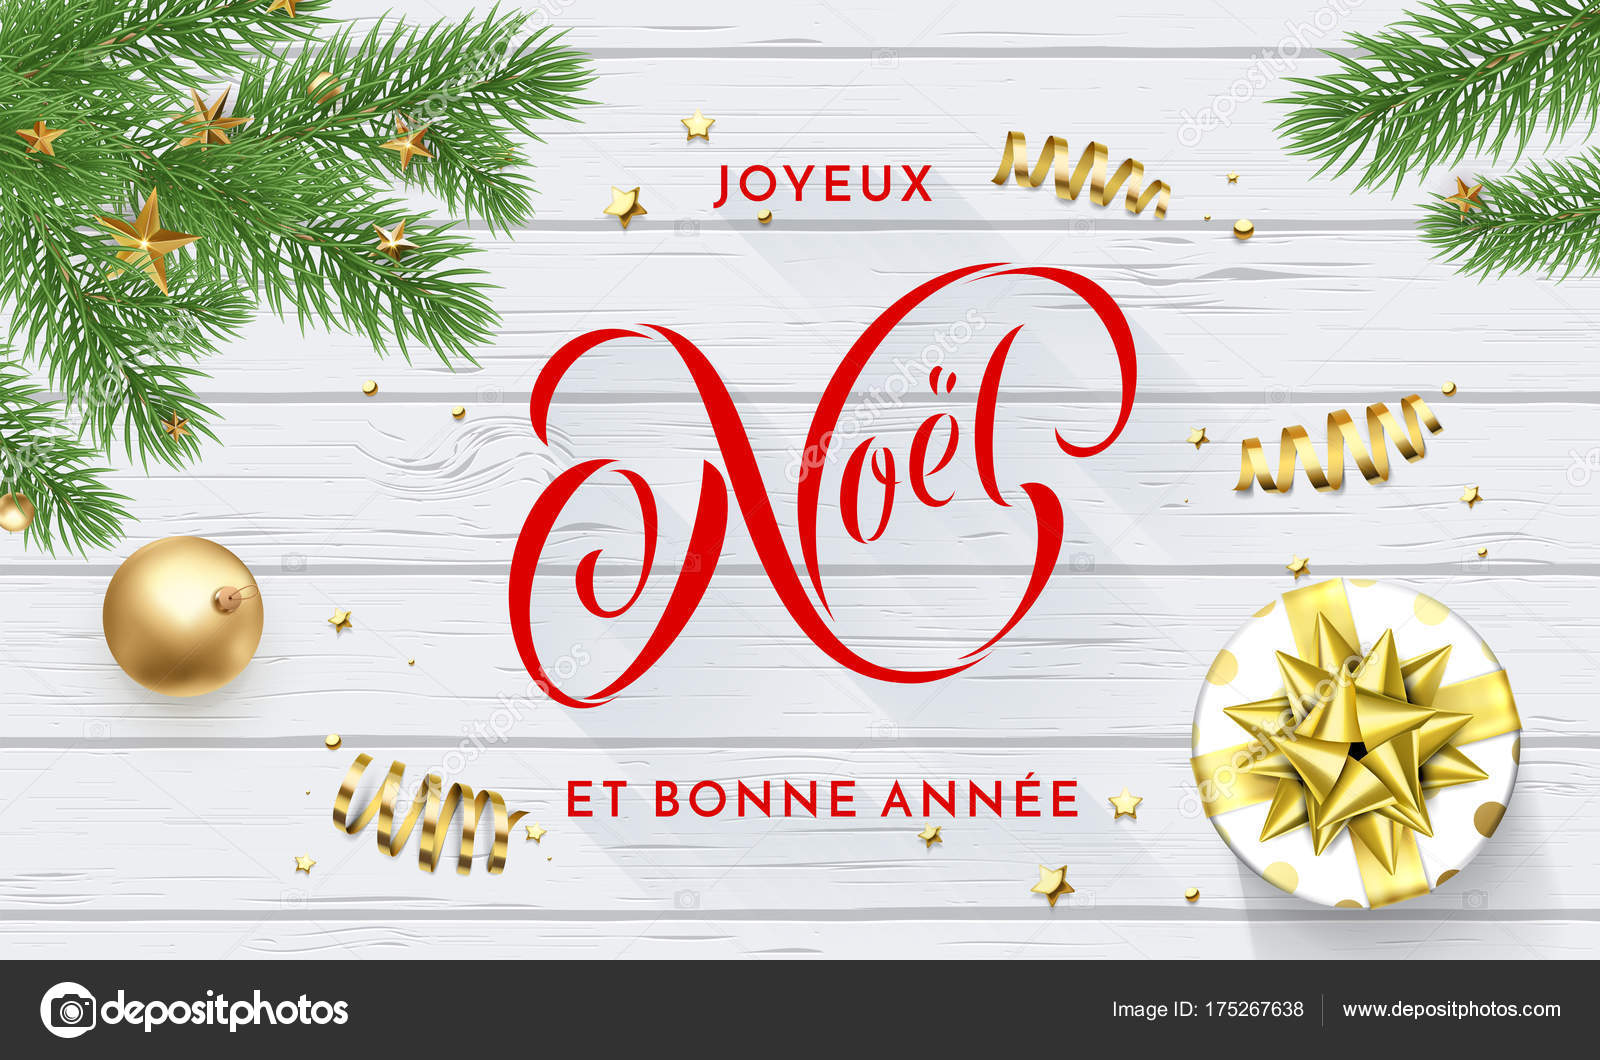 joyeux noel and bonne annee french merry christmas and happy new year golden decoration greeting card